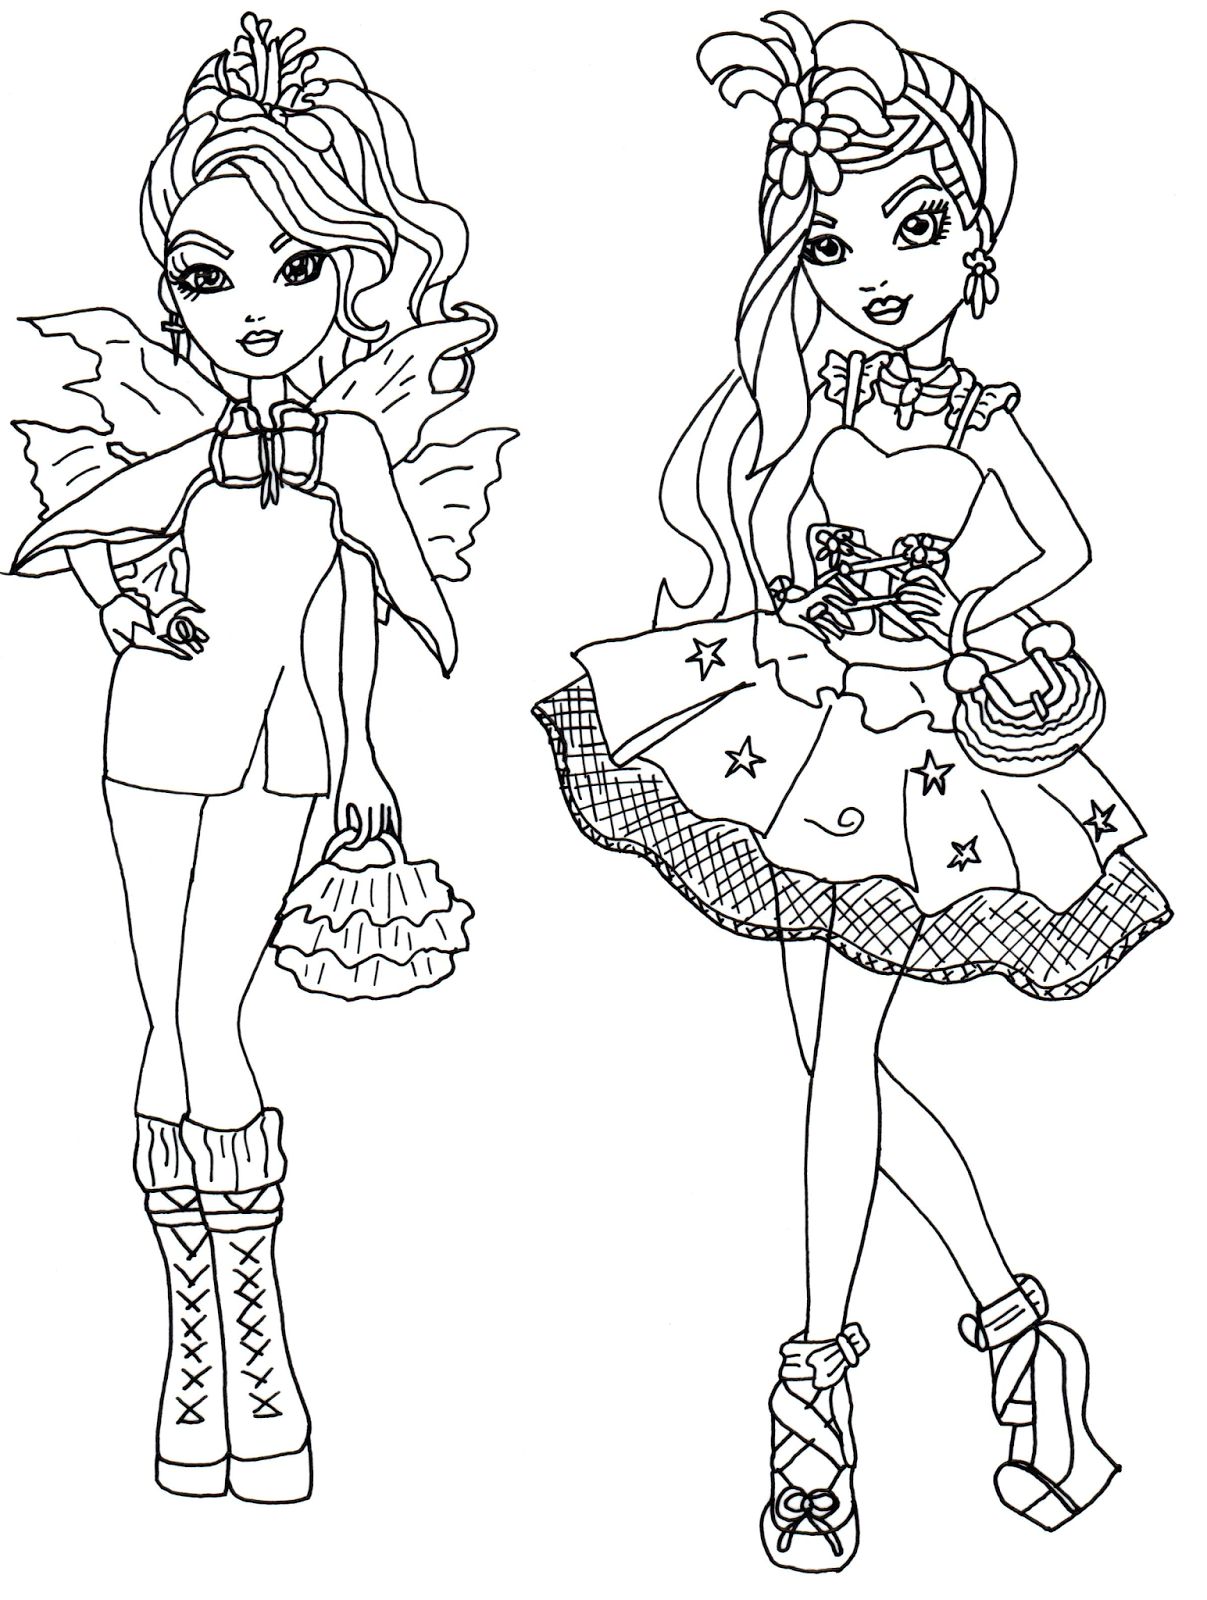 Free Printable Ever After High Coloring Pages: Faybelle